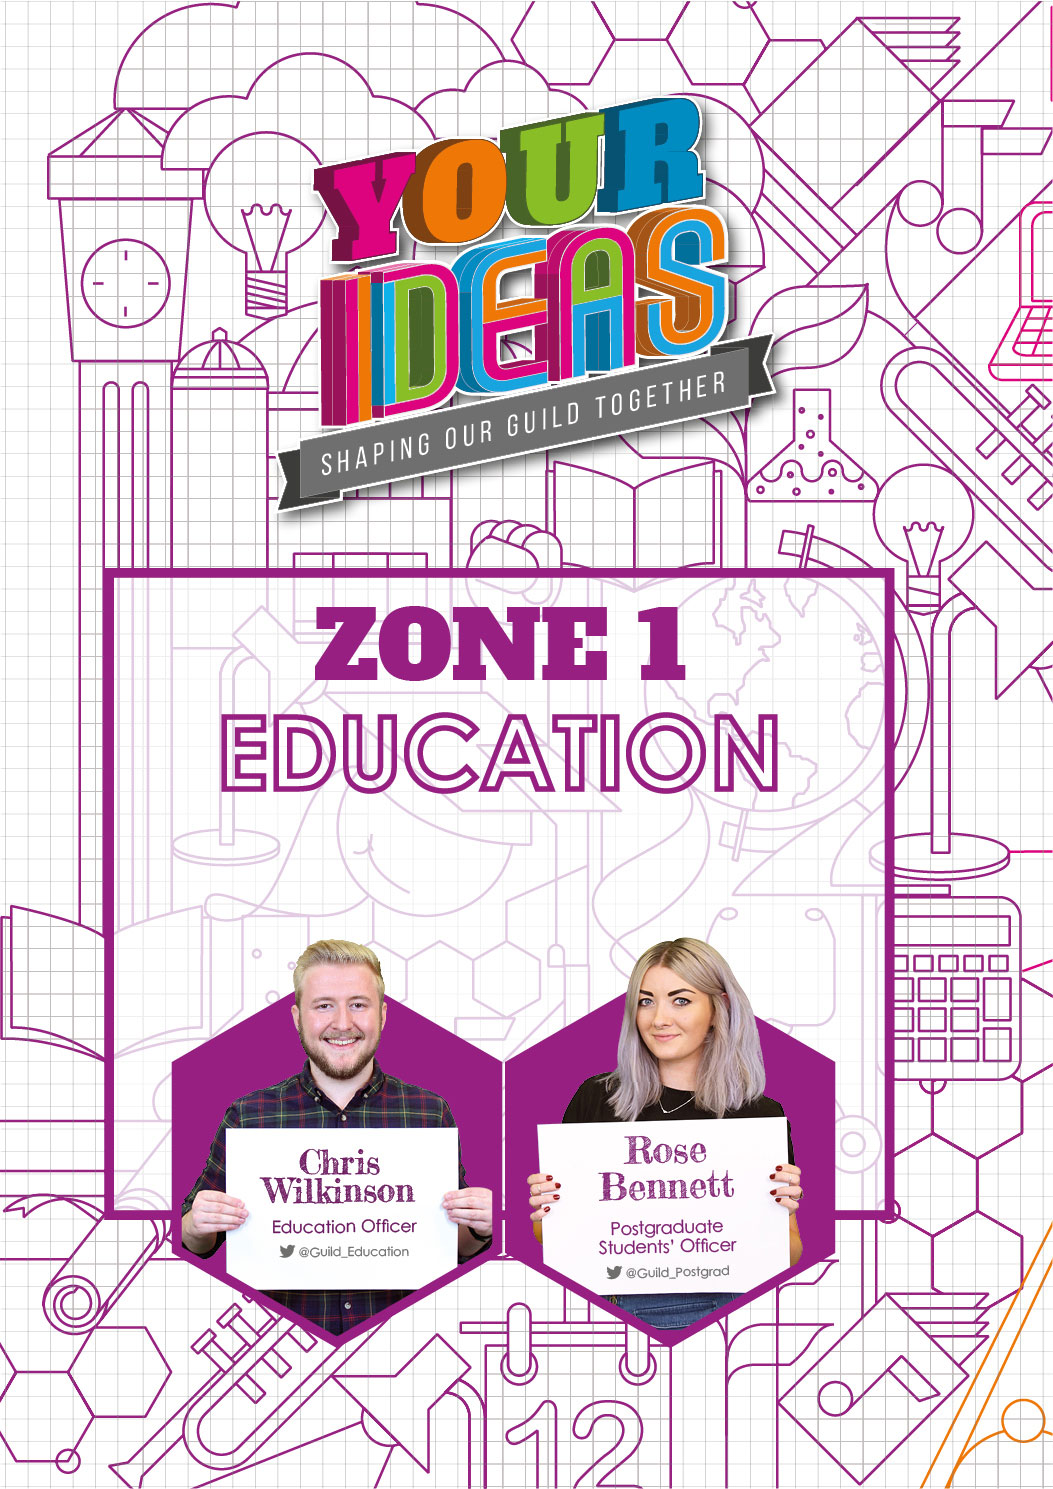 here you can find all of the Ideas related to your Education here at Birmingham. Chris, your Education Officer, and Rose, your Postgraduate Students' Officer, take care of the ideas in this Zone. Get in touch with them to find out more about the Zone and what they're working on. Click here to see what Ideas are currently up for discussion and voting in the Education Zone.